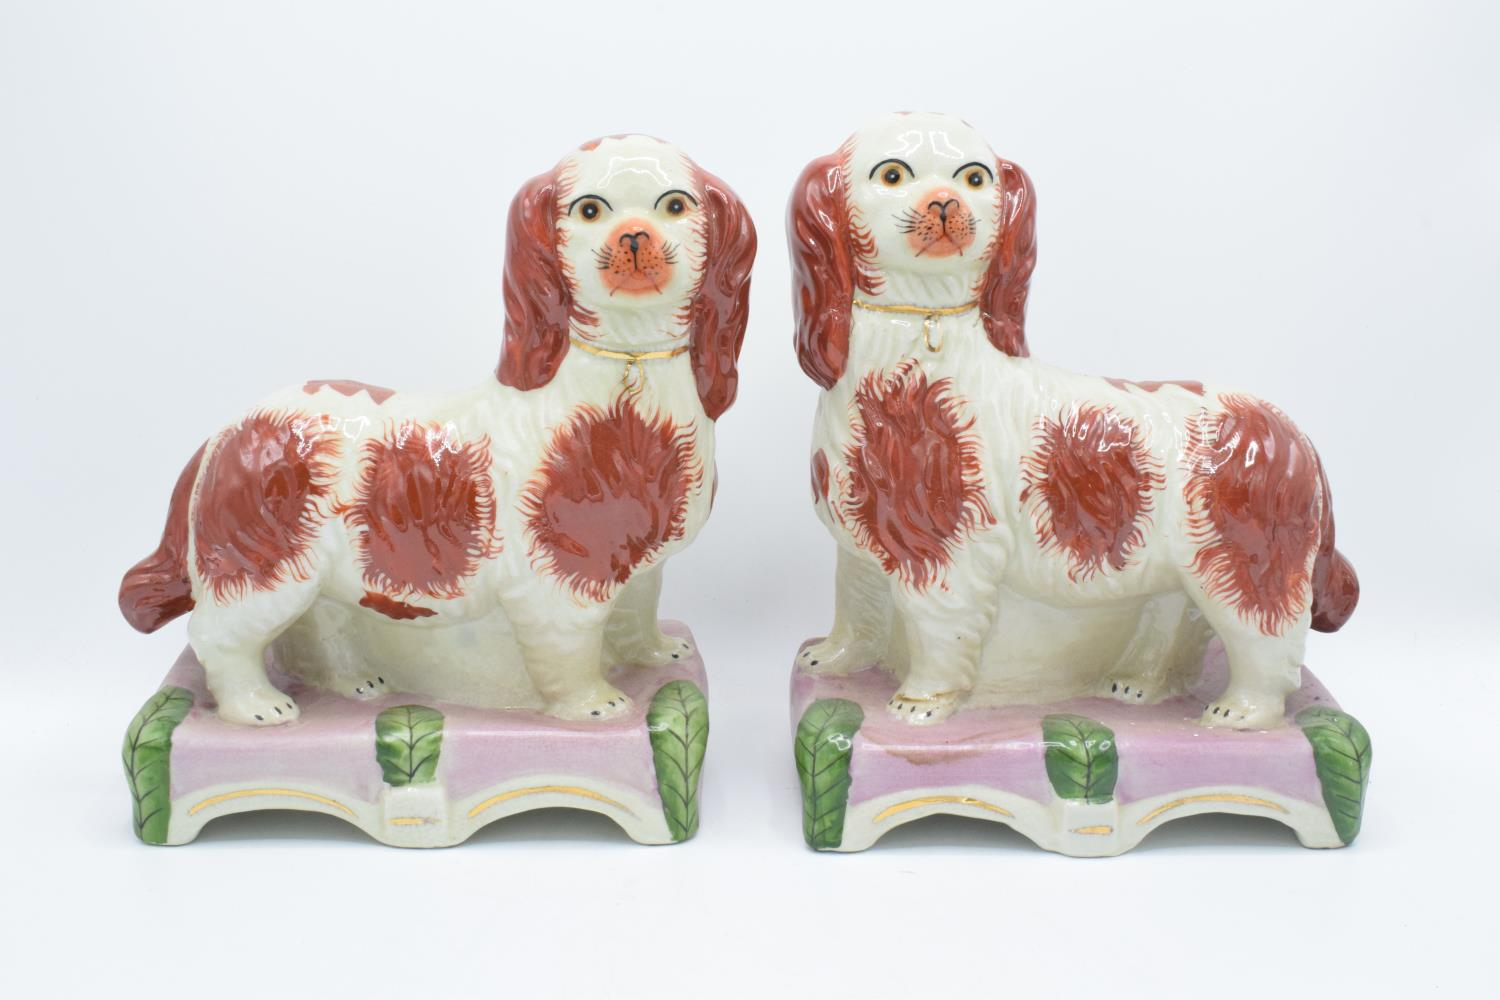 Pair of 20th century reproduction Staffordshire dogs on domed bases (2) In good condition with no